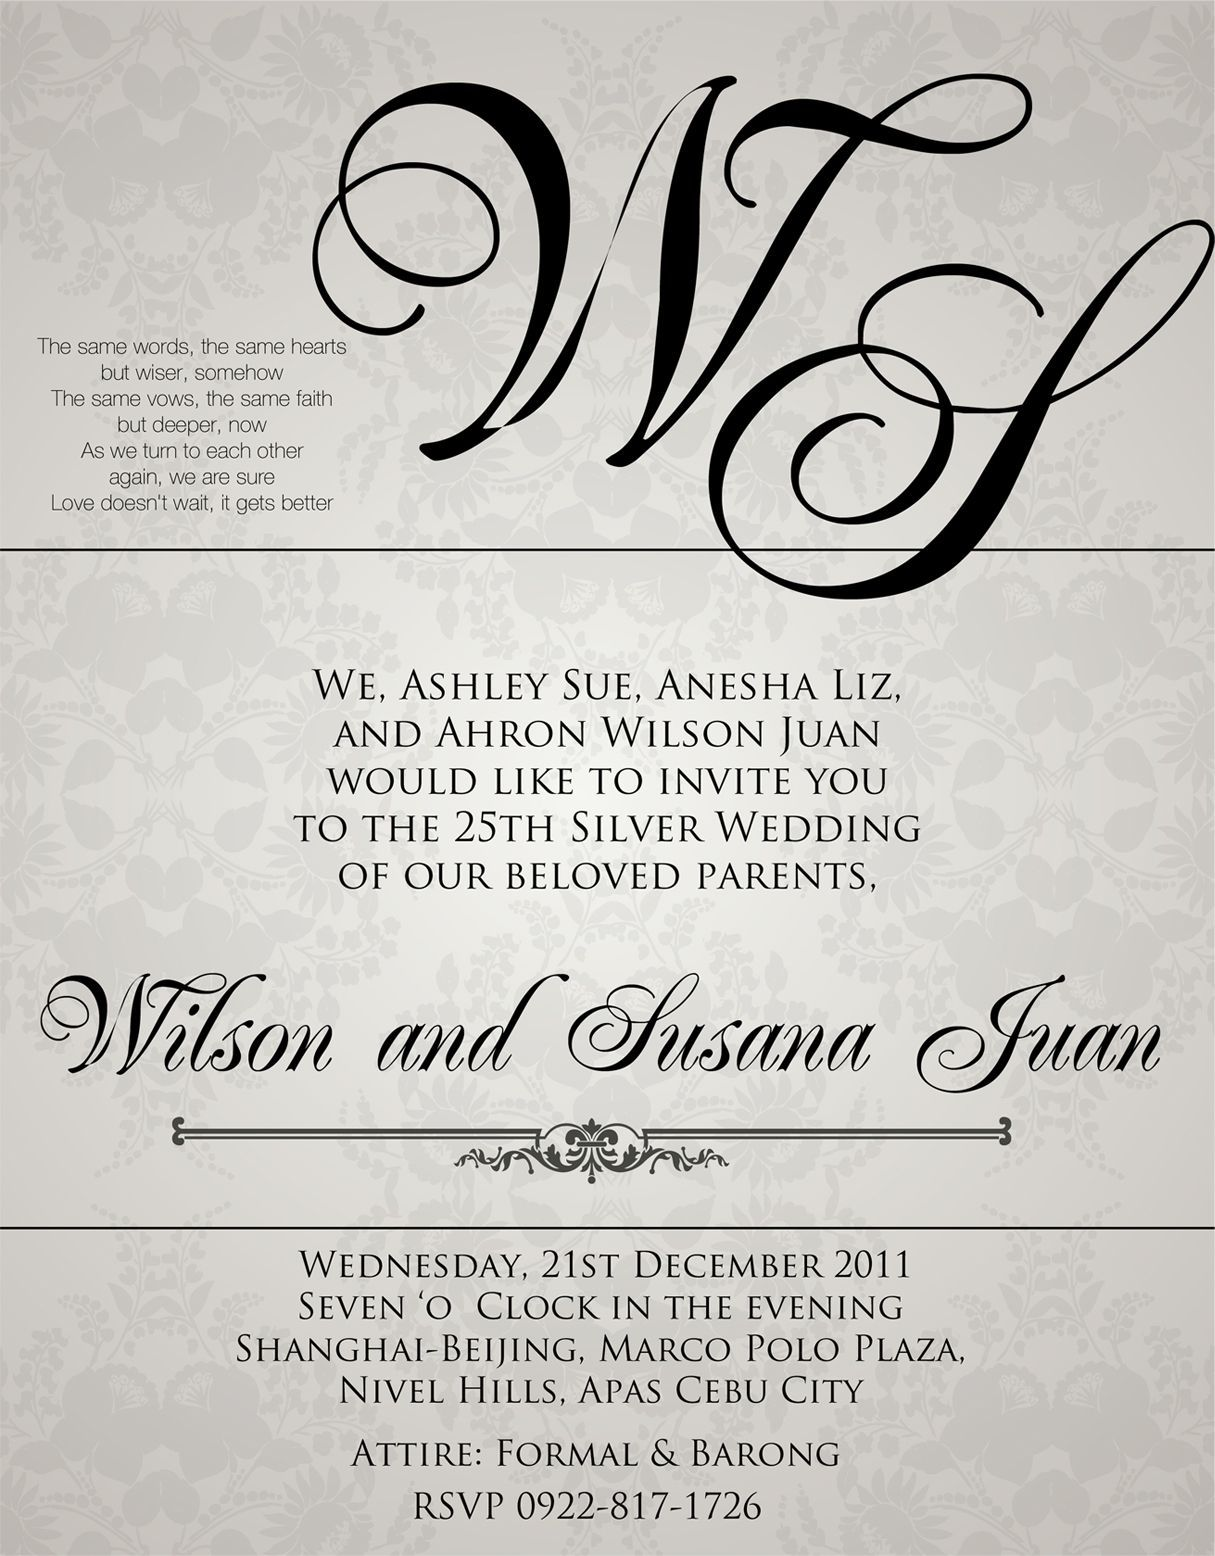 Sample Wedding Invitation Wording In The Philippines. College Resume Template For High School Students. Outreach Worker Cover Letters Template. Sample Of Application Letter As A Sales Girl. Sales Order Forms Templates Free Template. Yearly Calendar 2017 Template. Party Invitations Templates Free Downloads Template. Sample Of Purchase Order Format Template. Project Management Resume Summary Template